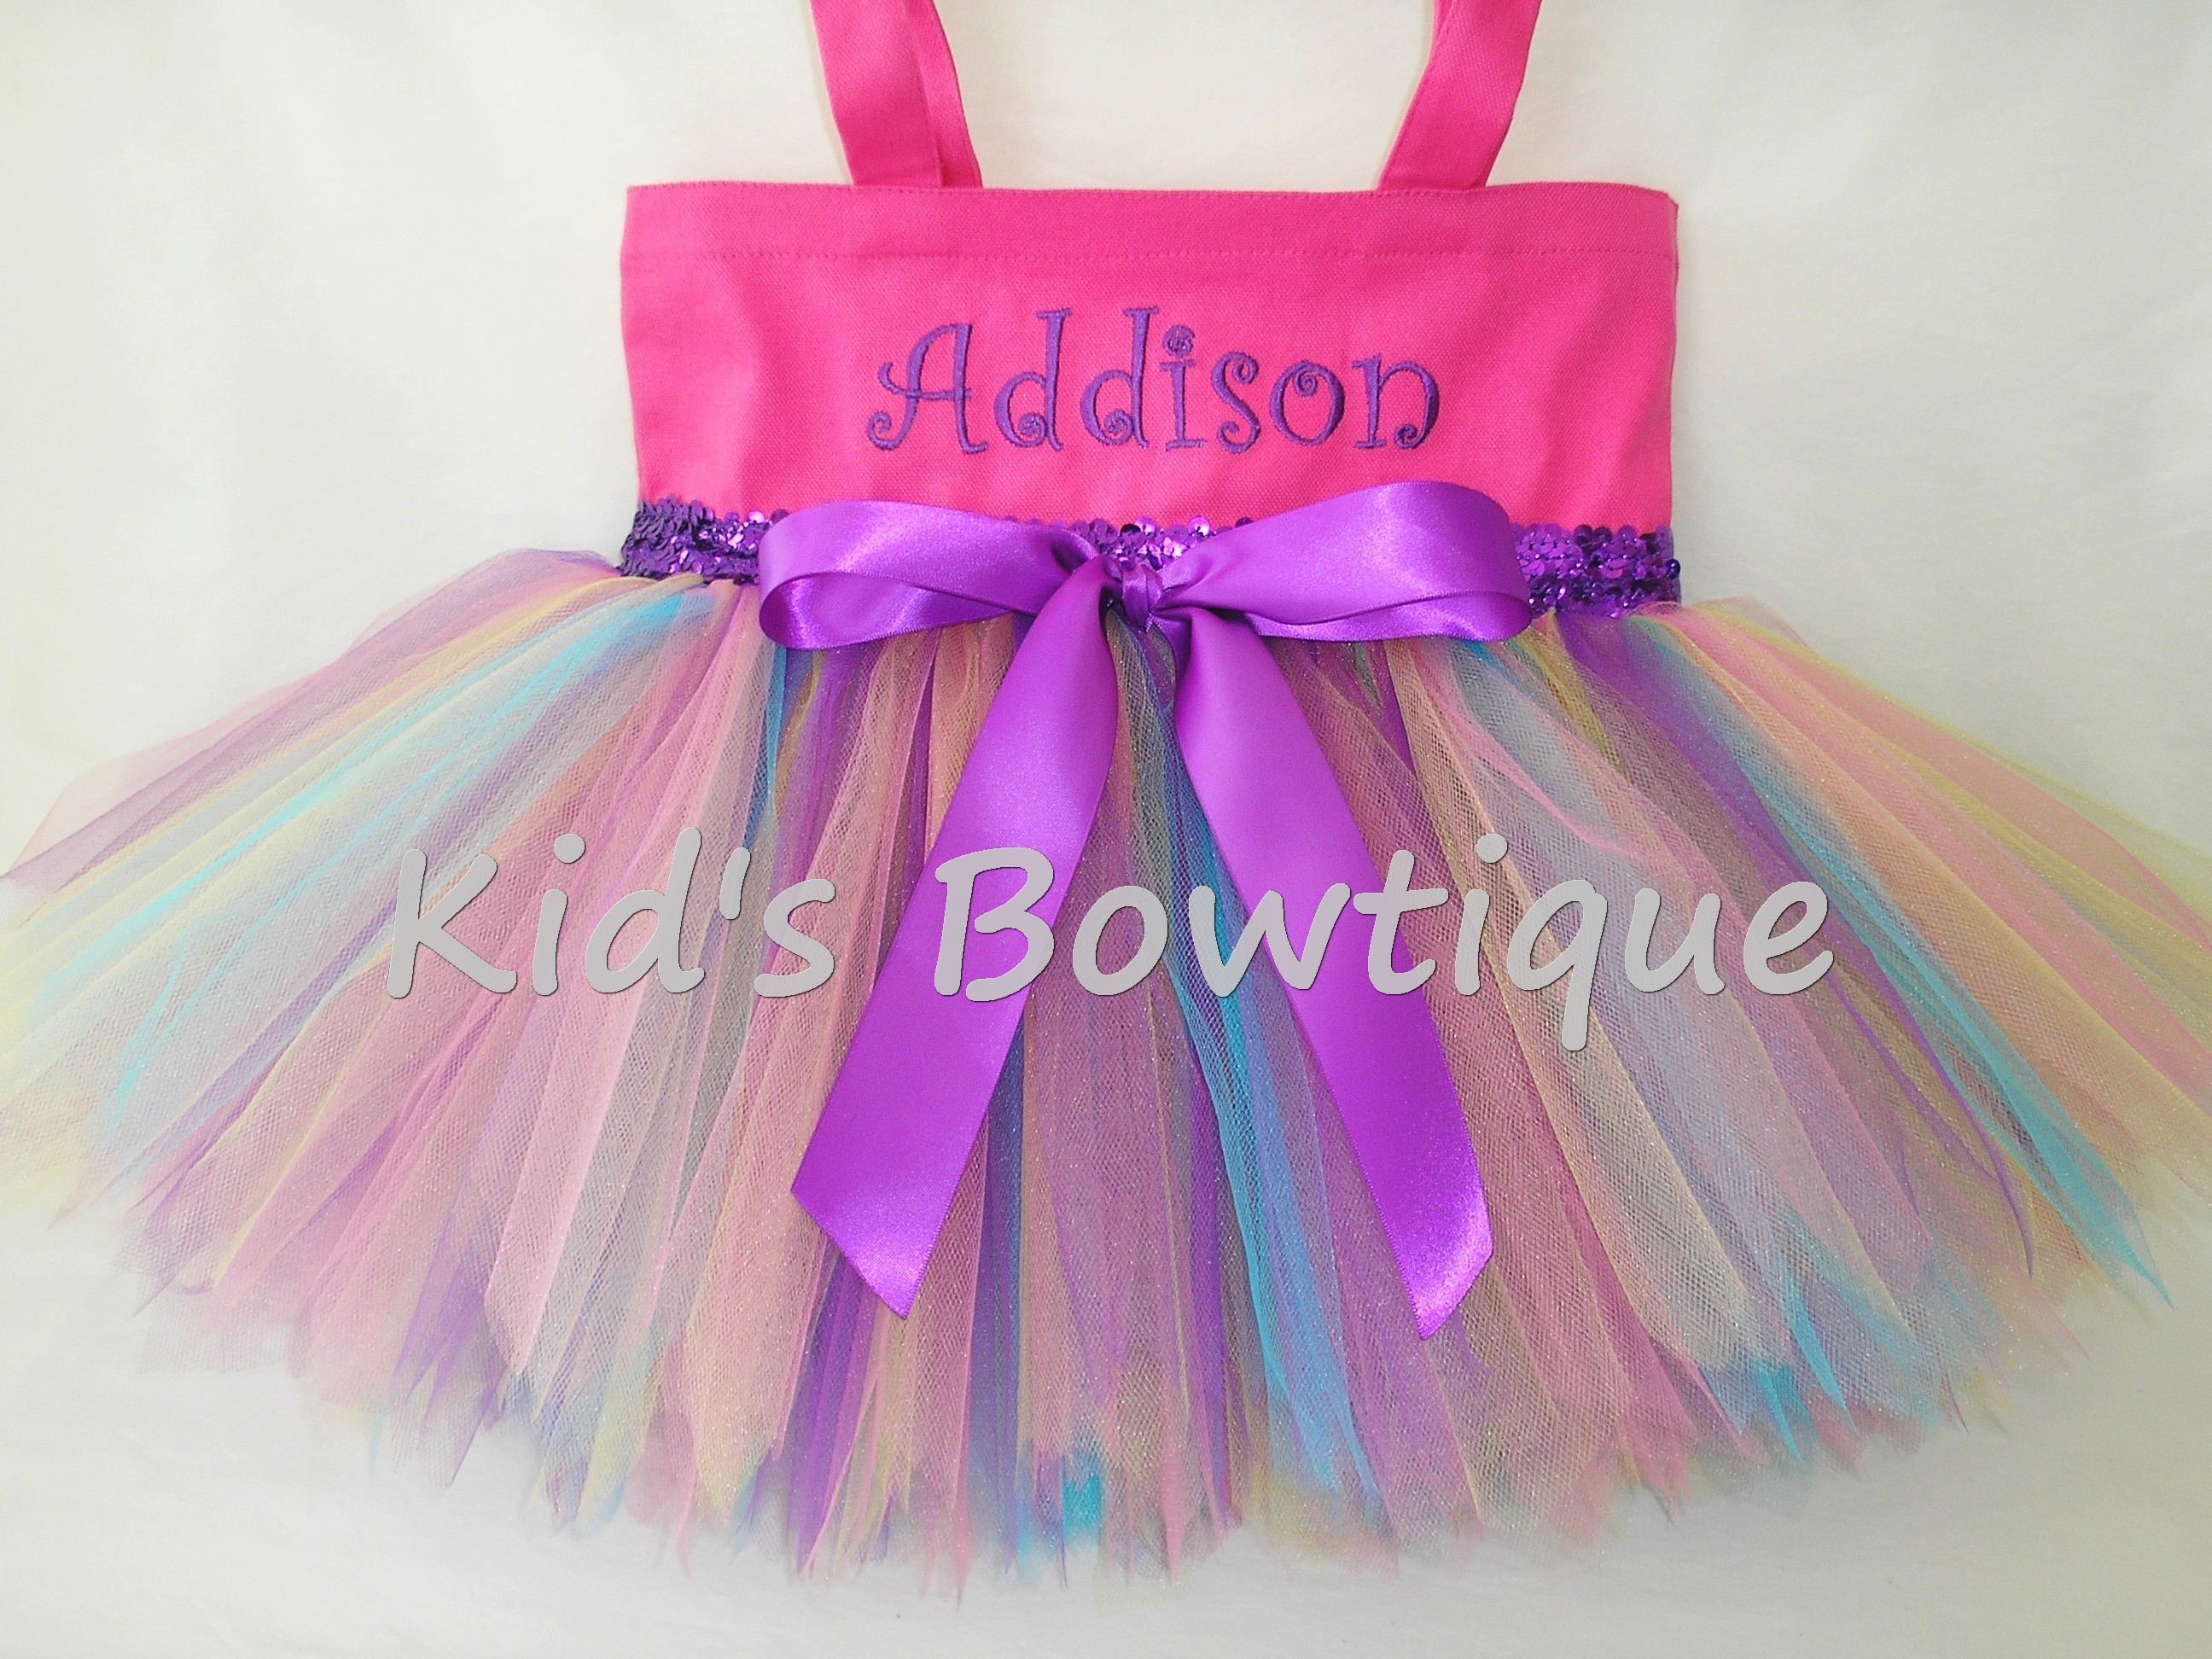 Monogrammed Tutu Tote Bag - ttb43 LG Hot Pink Rainbow Fairy